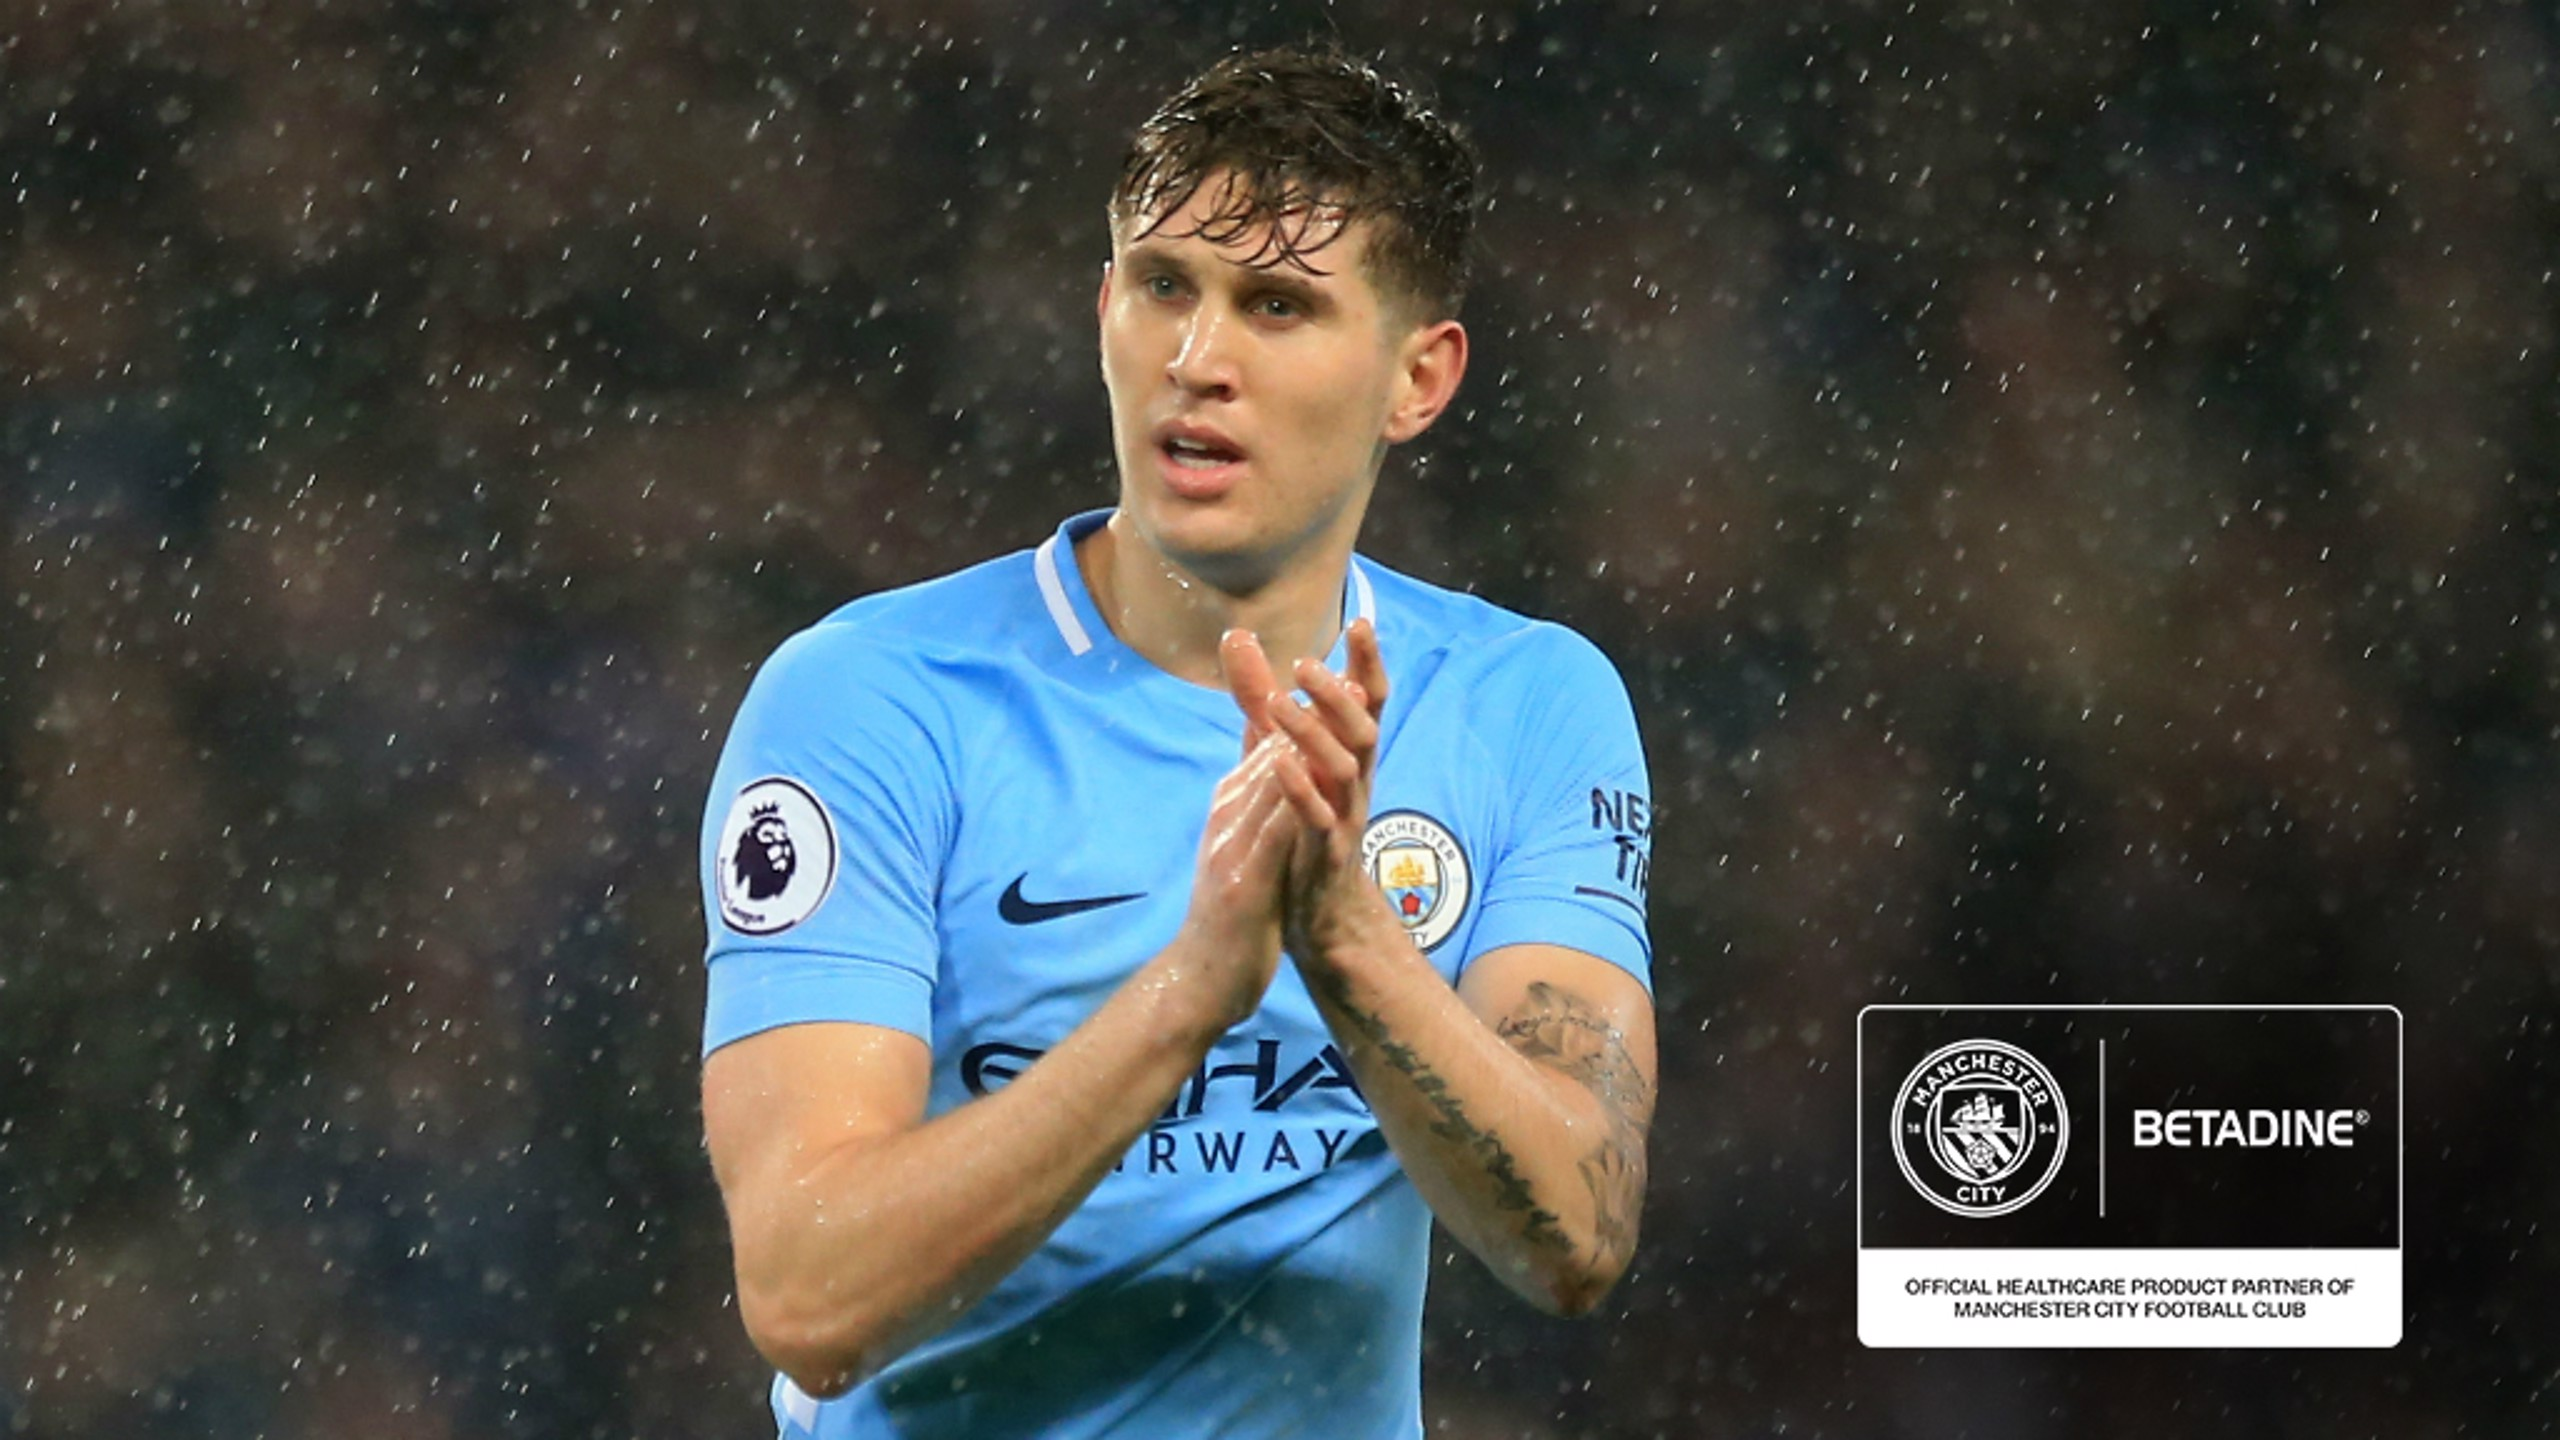 RETURN: John Stones was back in action for City against Watford, following injury